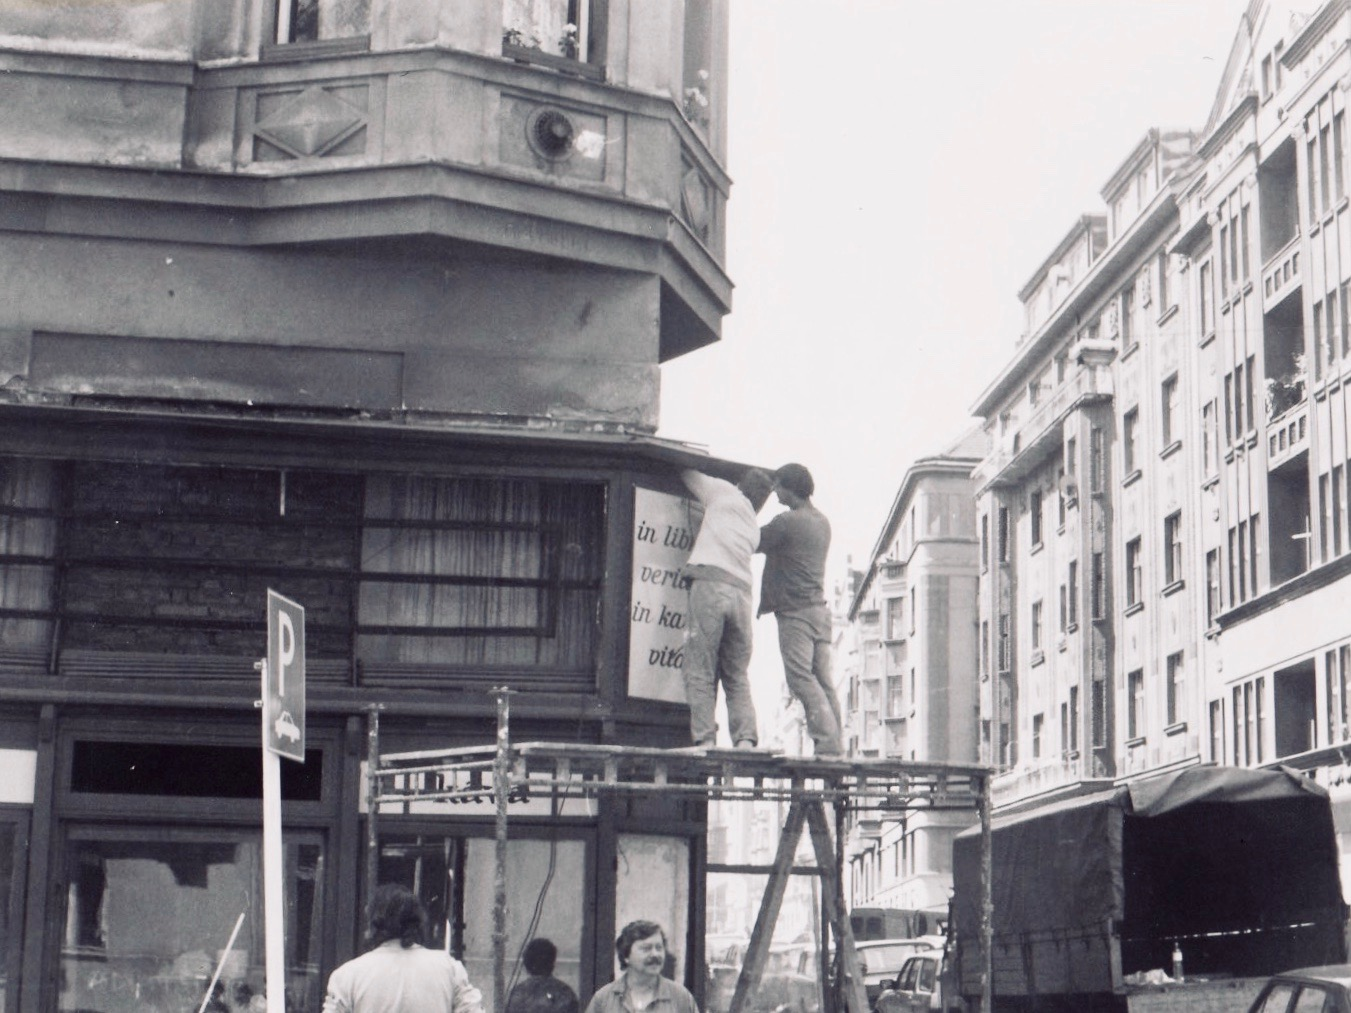 Renovating the outside of The Globe bookstore and cafe in 1993, putting up sign with store motto